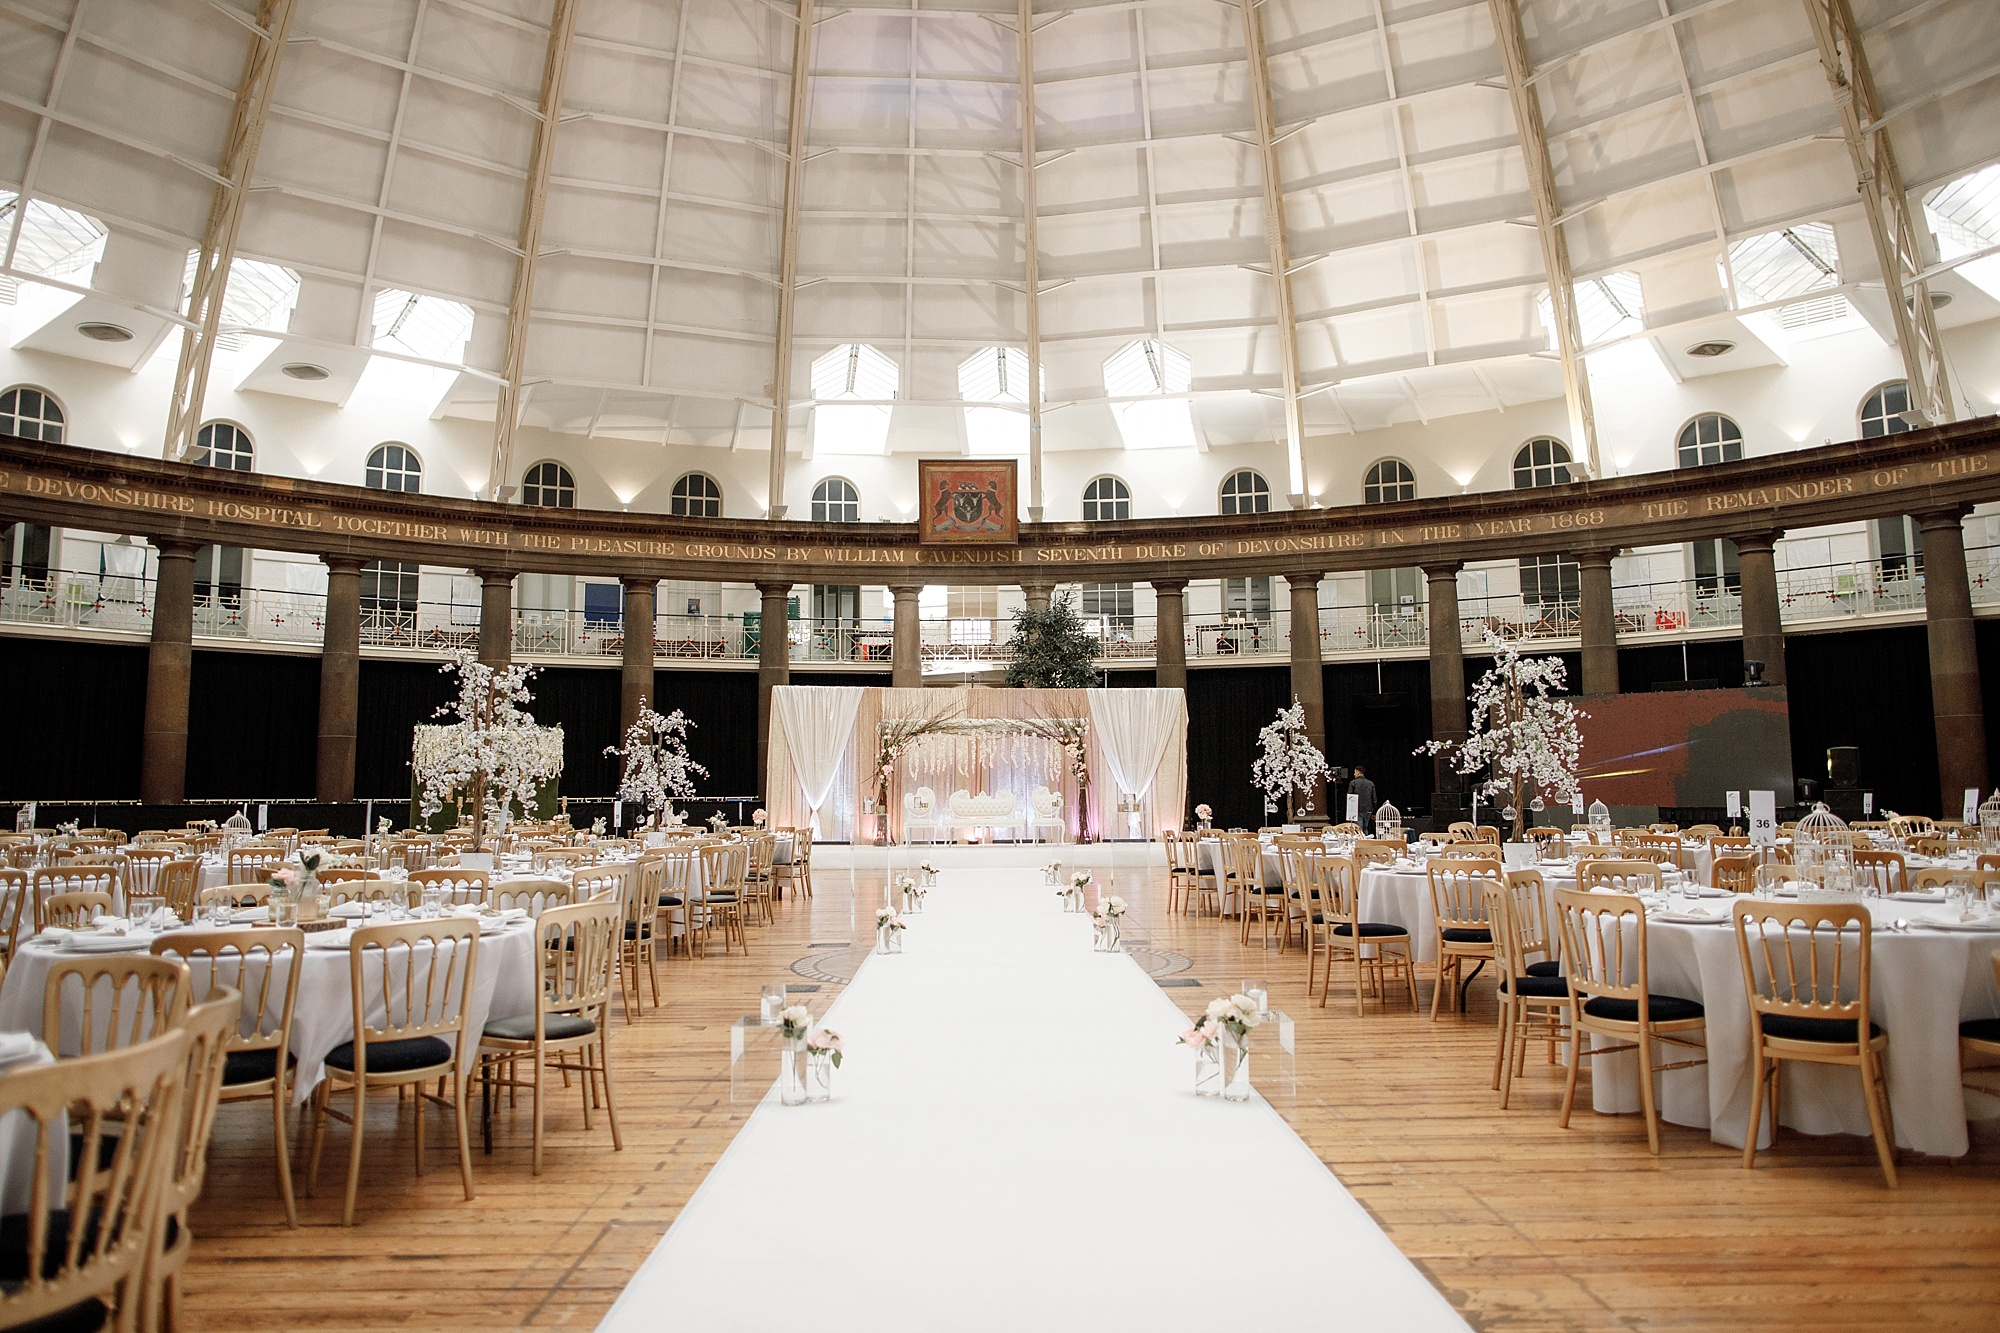 Wedding venue details photography at Devonshire Dome